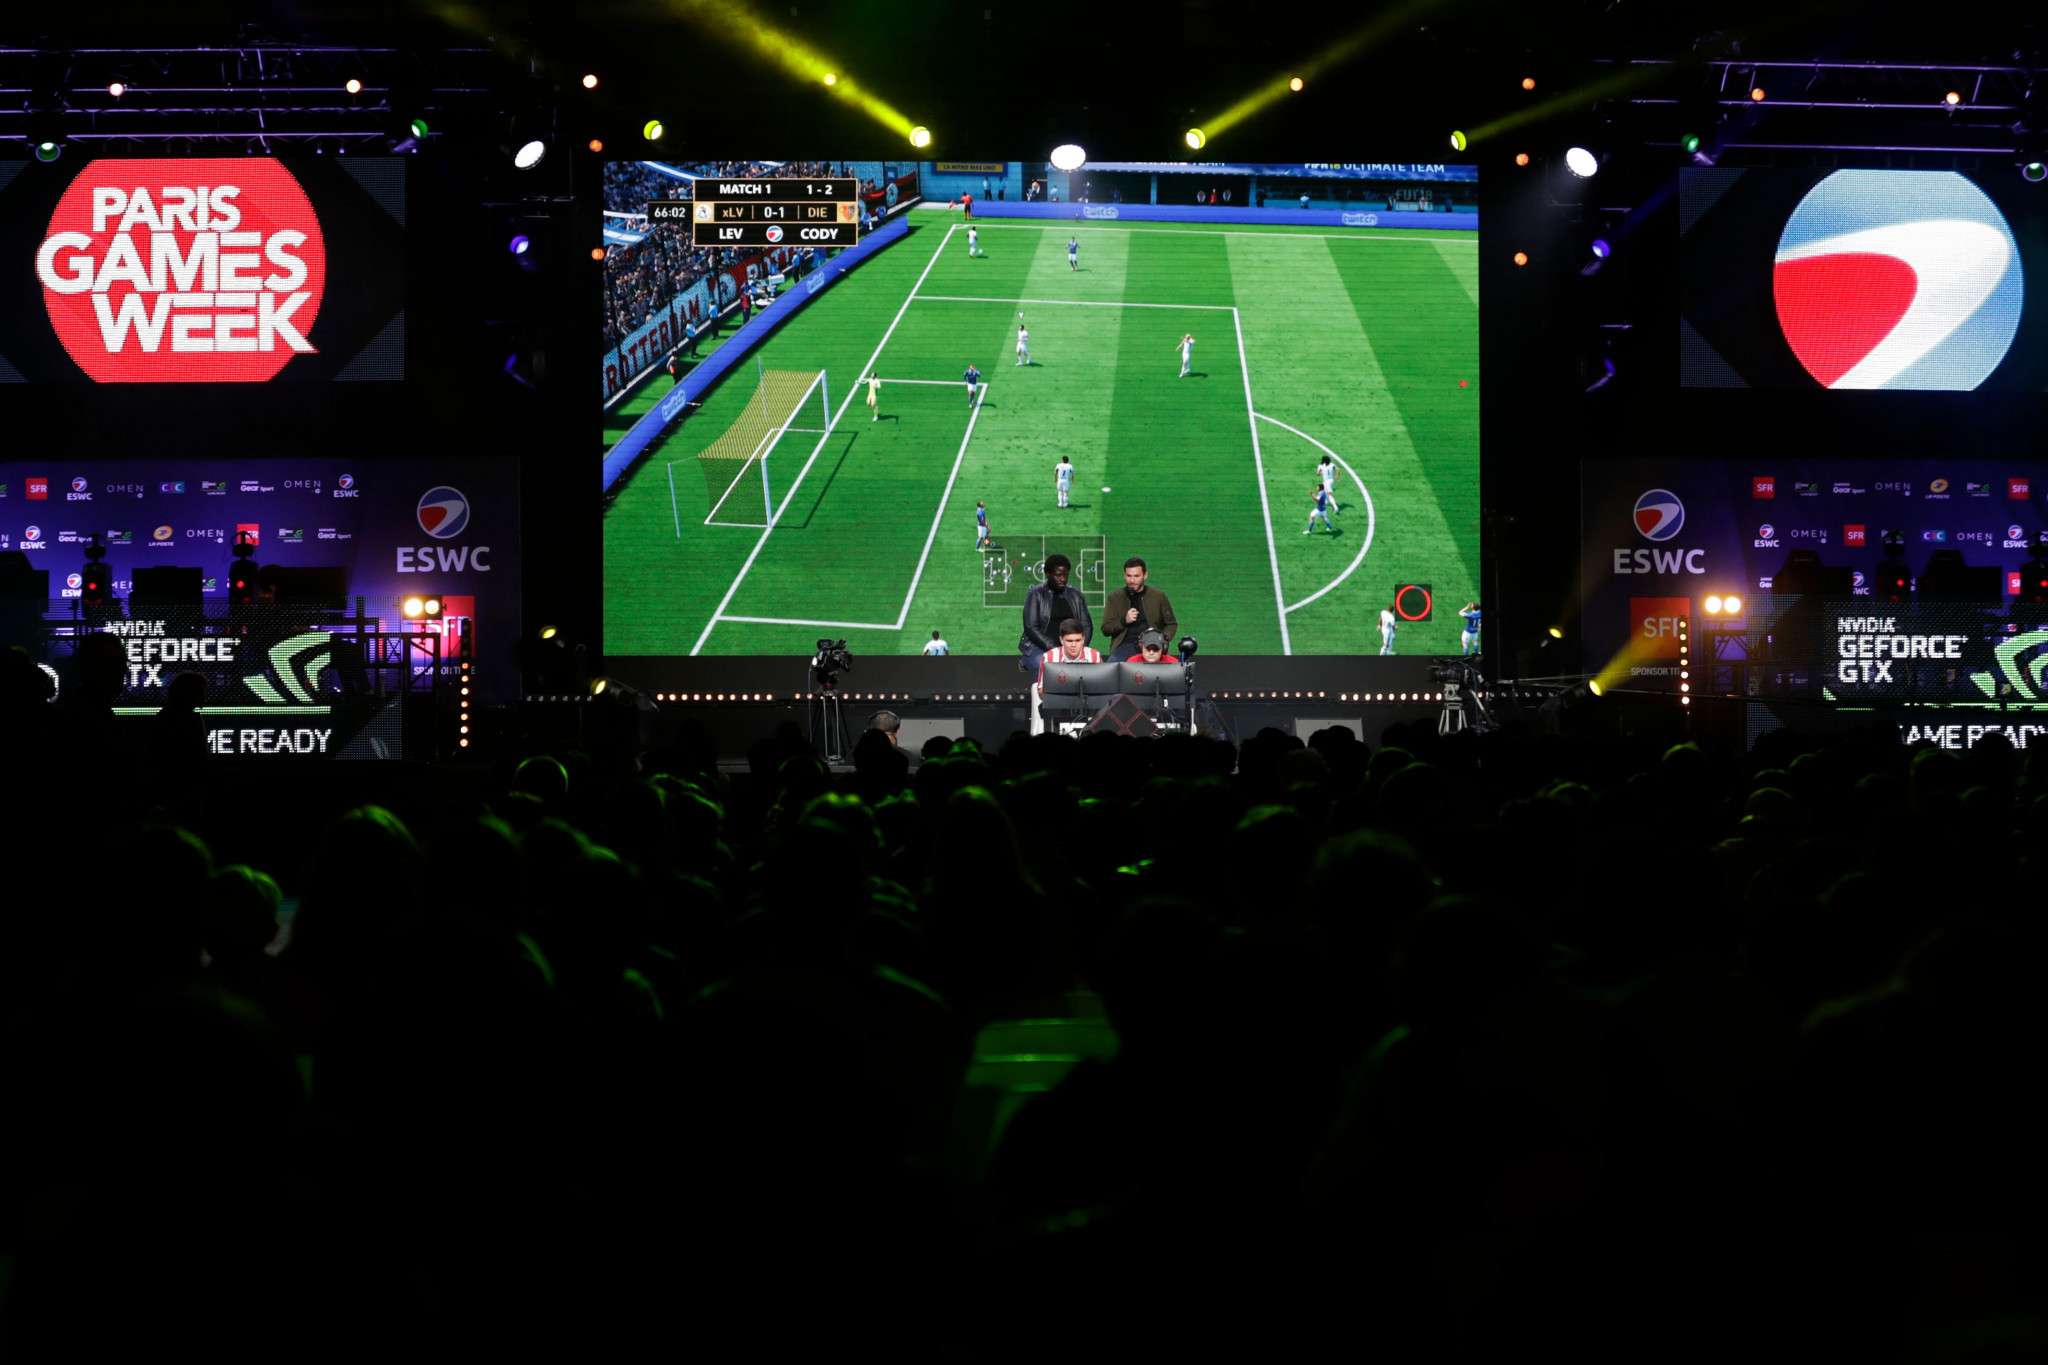 Minsk 2019 cultural programme to include esports with FIFA 19 tournament proposed